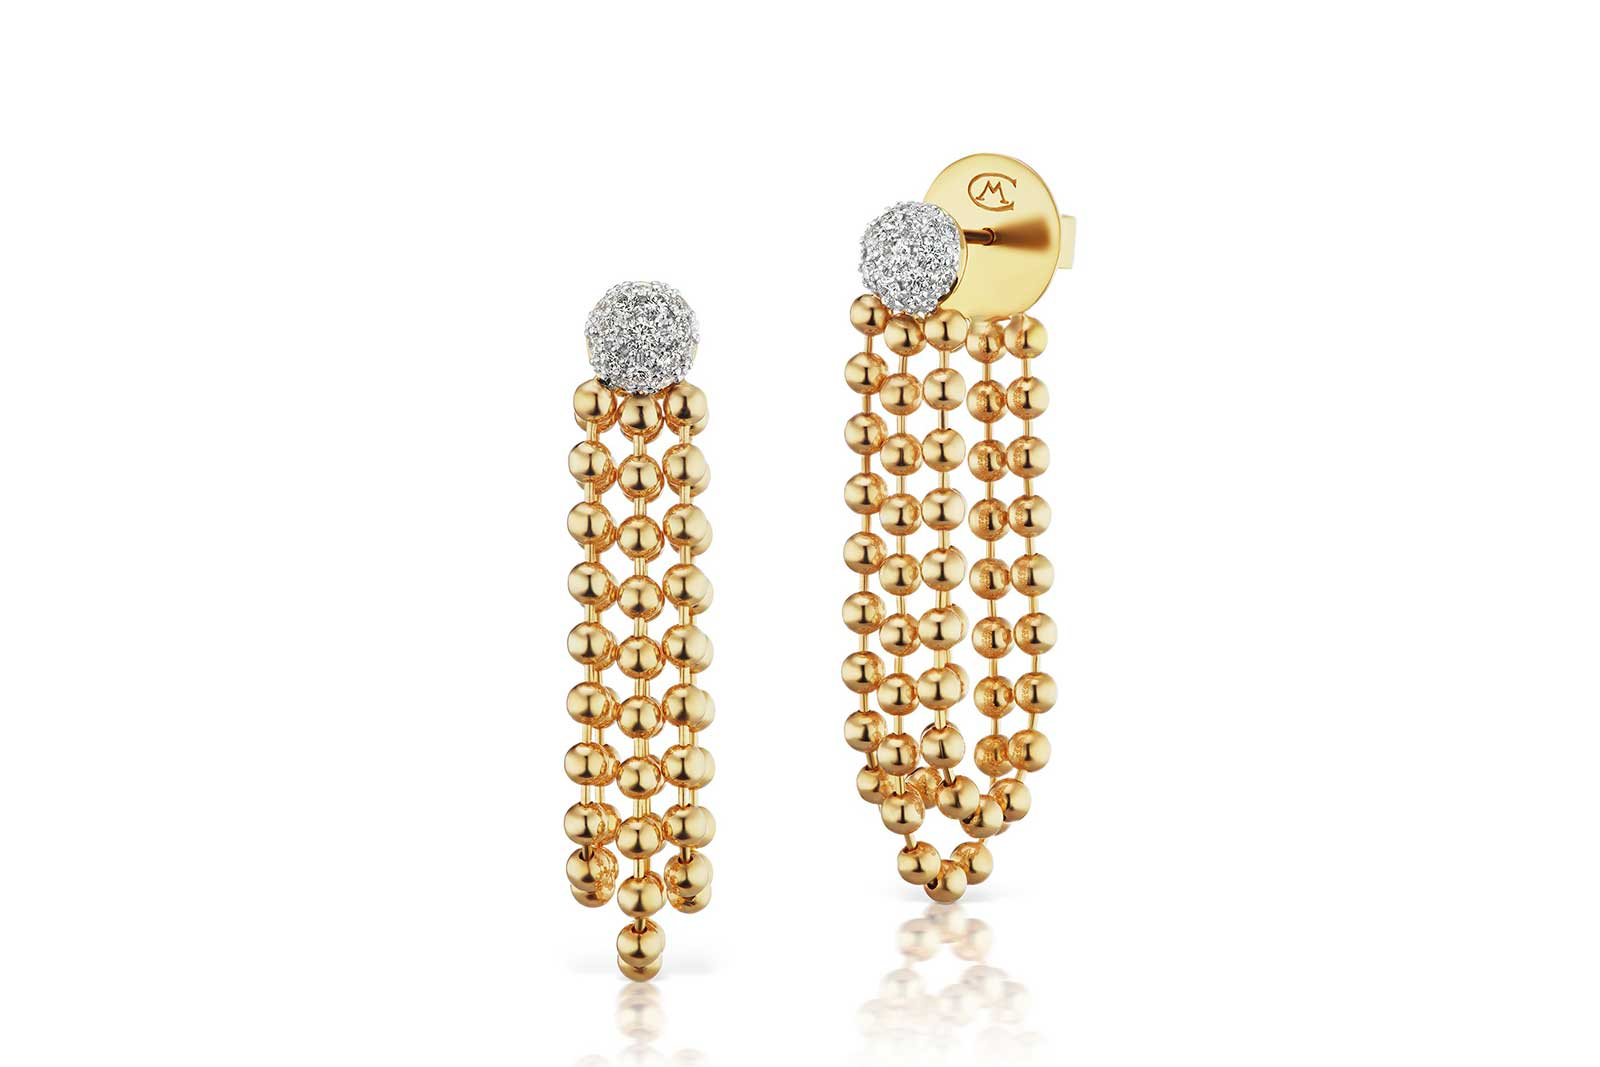 Maria Canale 'Flapper' collection earrings with diamonds in 18k yellow gold